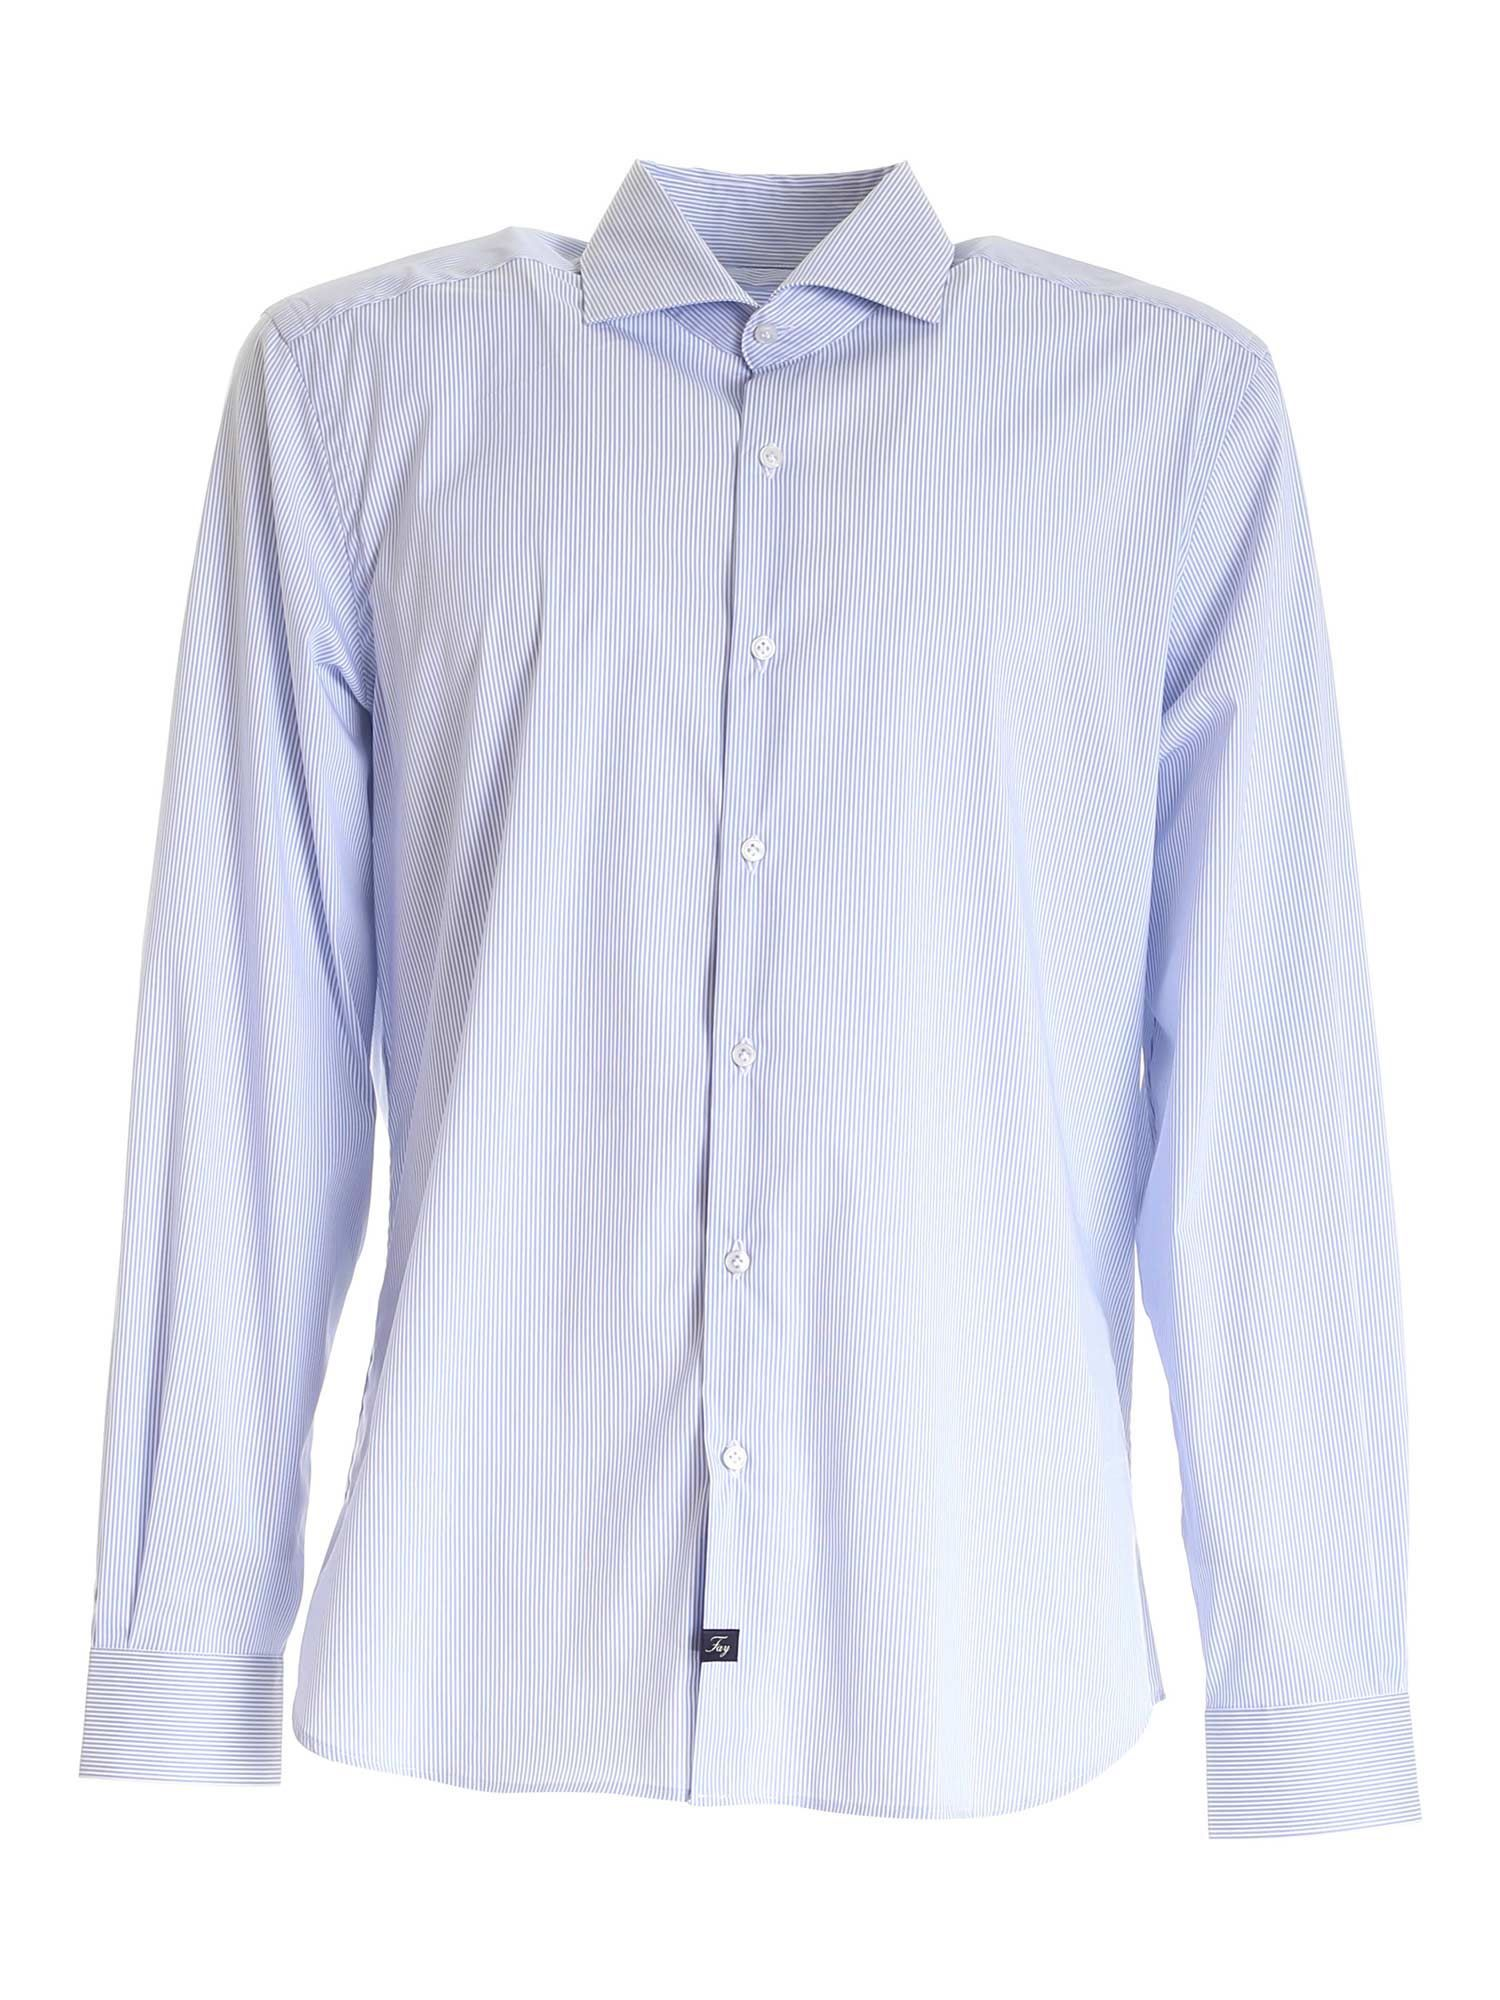 Fay FAY MEN'S LIGHT BLUE OTHER MATERIALS SHIRT